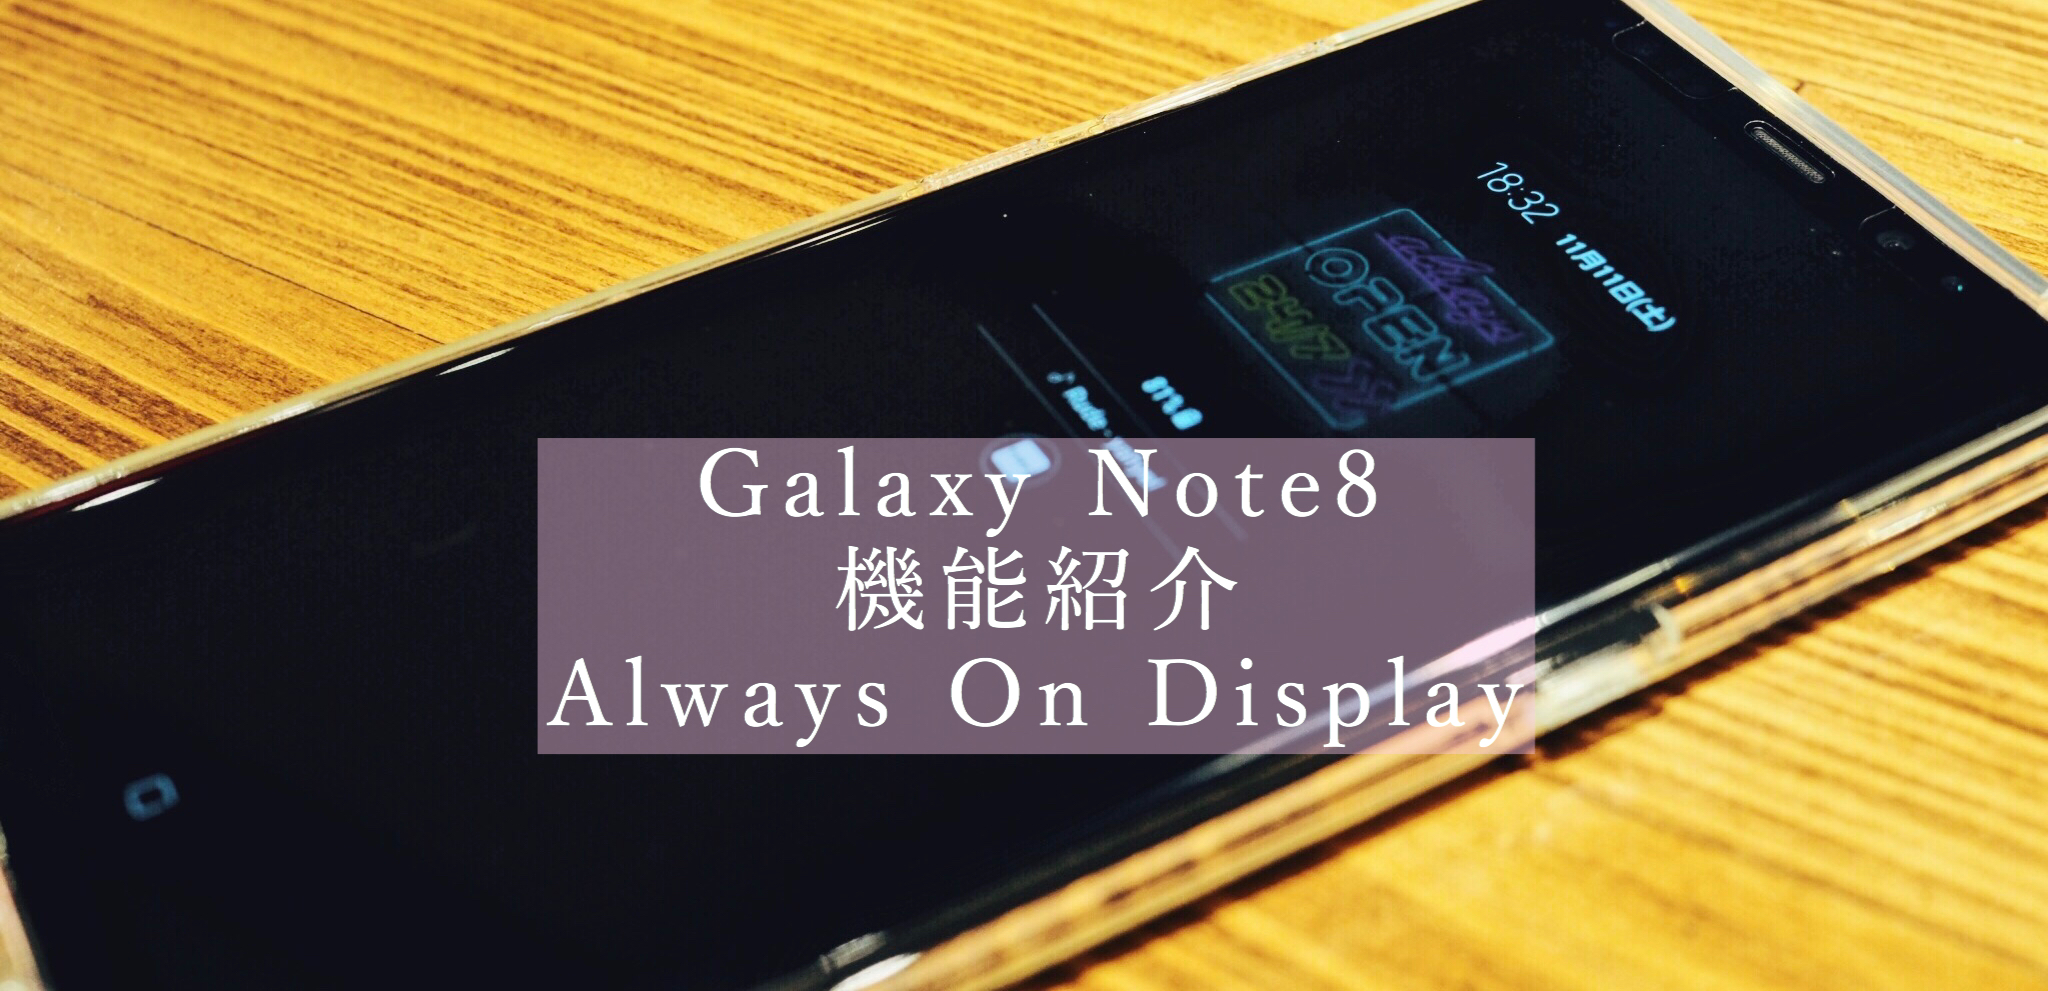 Galaxy Note8のAlways On Display機能イメージ画像